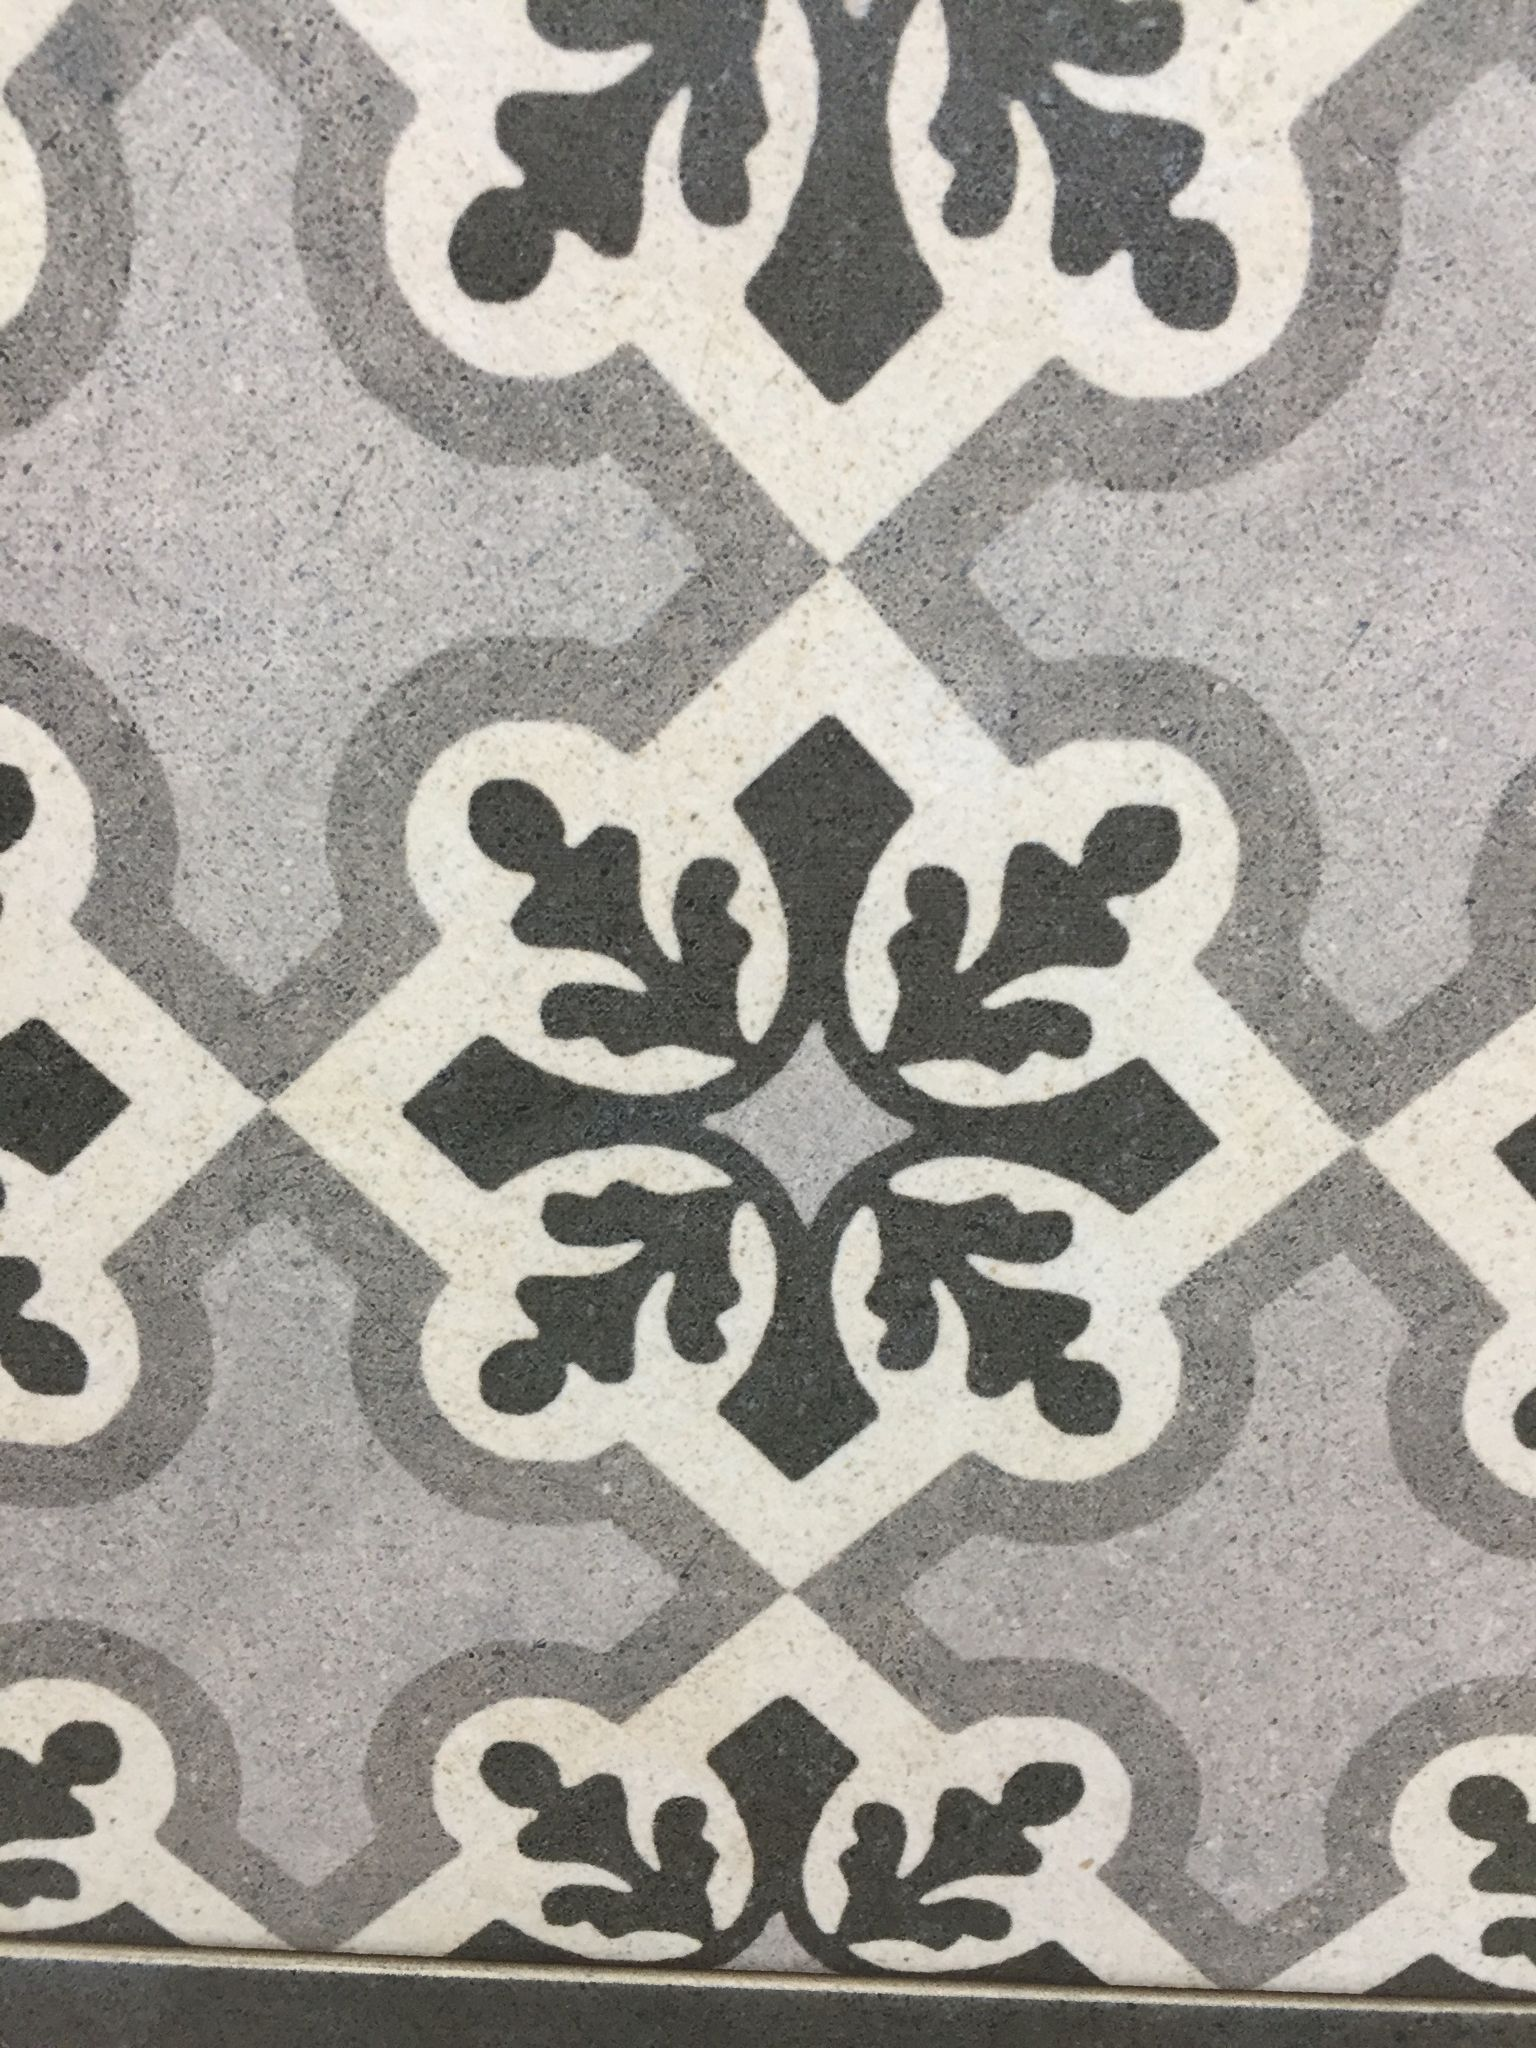 For The Downstairs Bathroom Floor Love Tessellated Tiles And